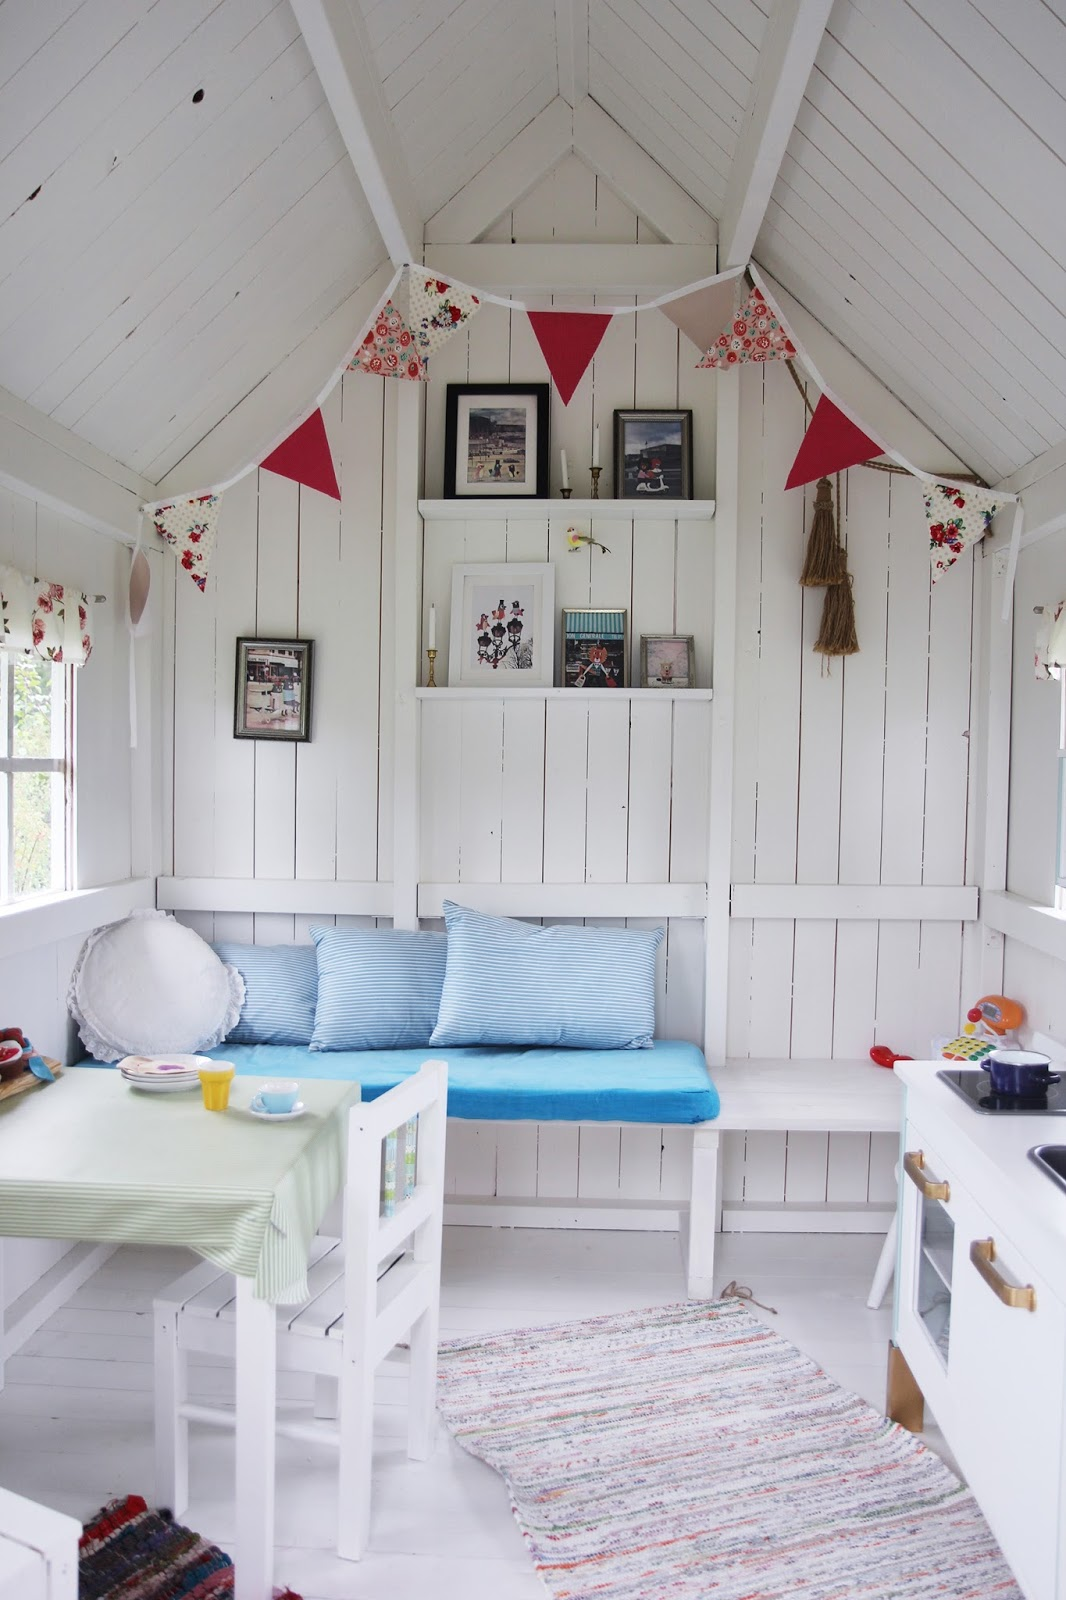 Play house for kids on pinterest play houses playhouse for Interior playhouse designs